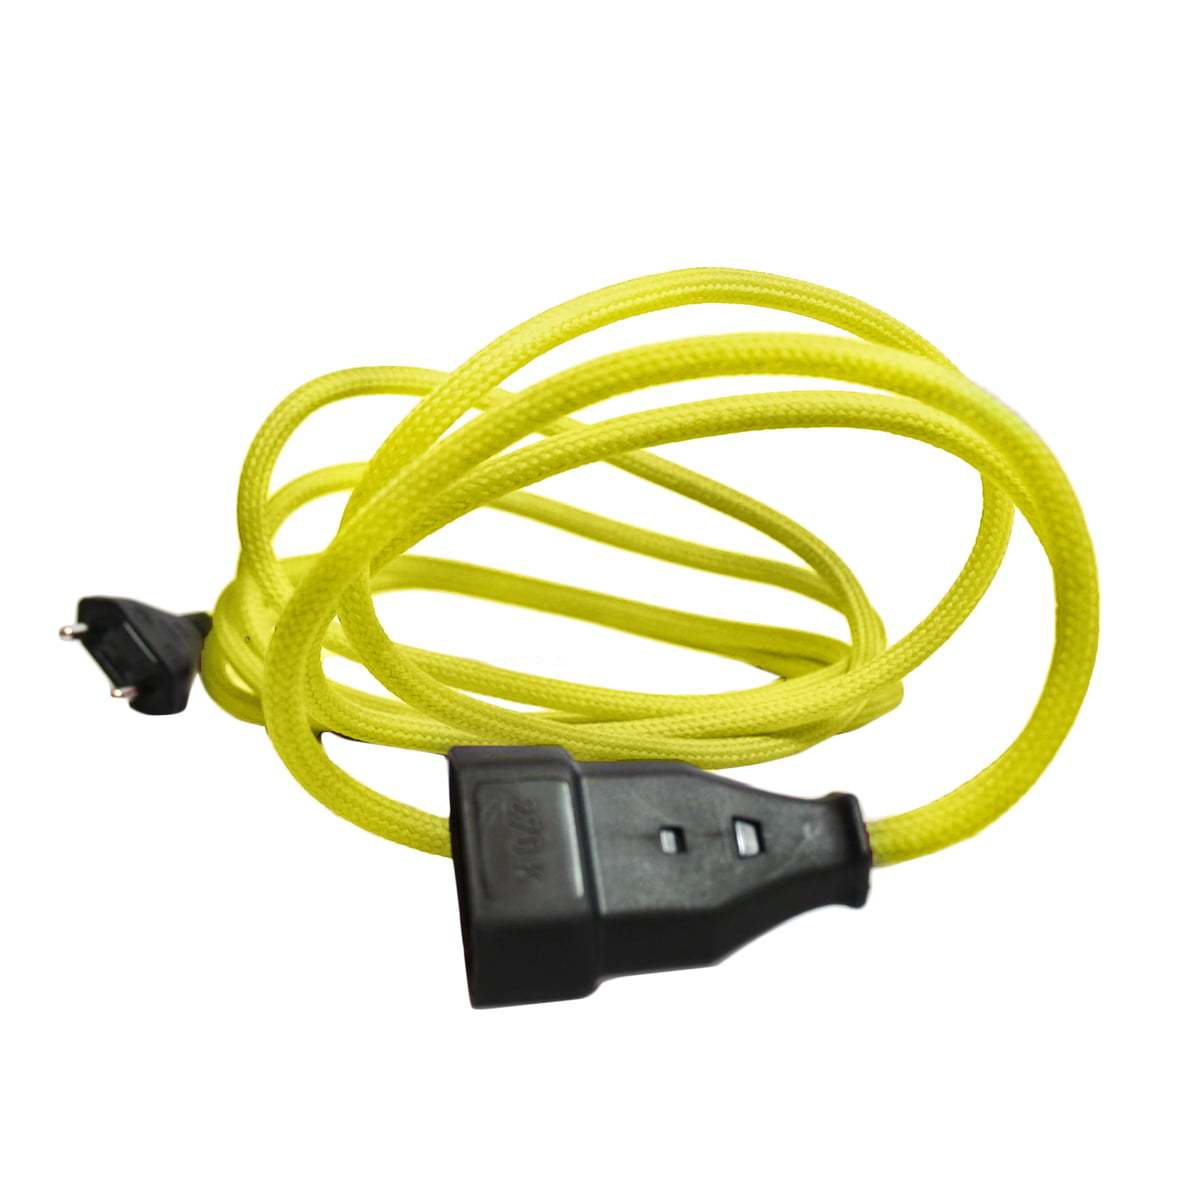 Extension Wire | Nud Extension Cord Nud Collection Shop